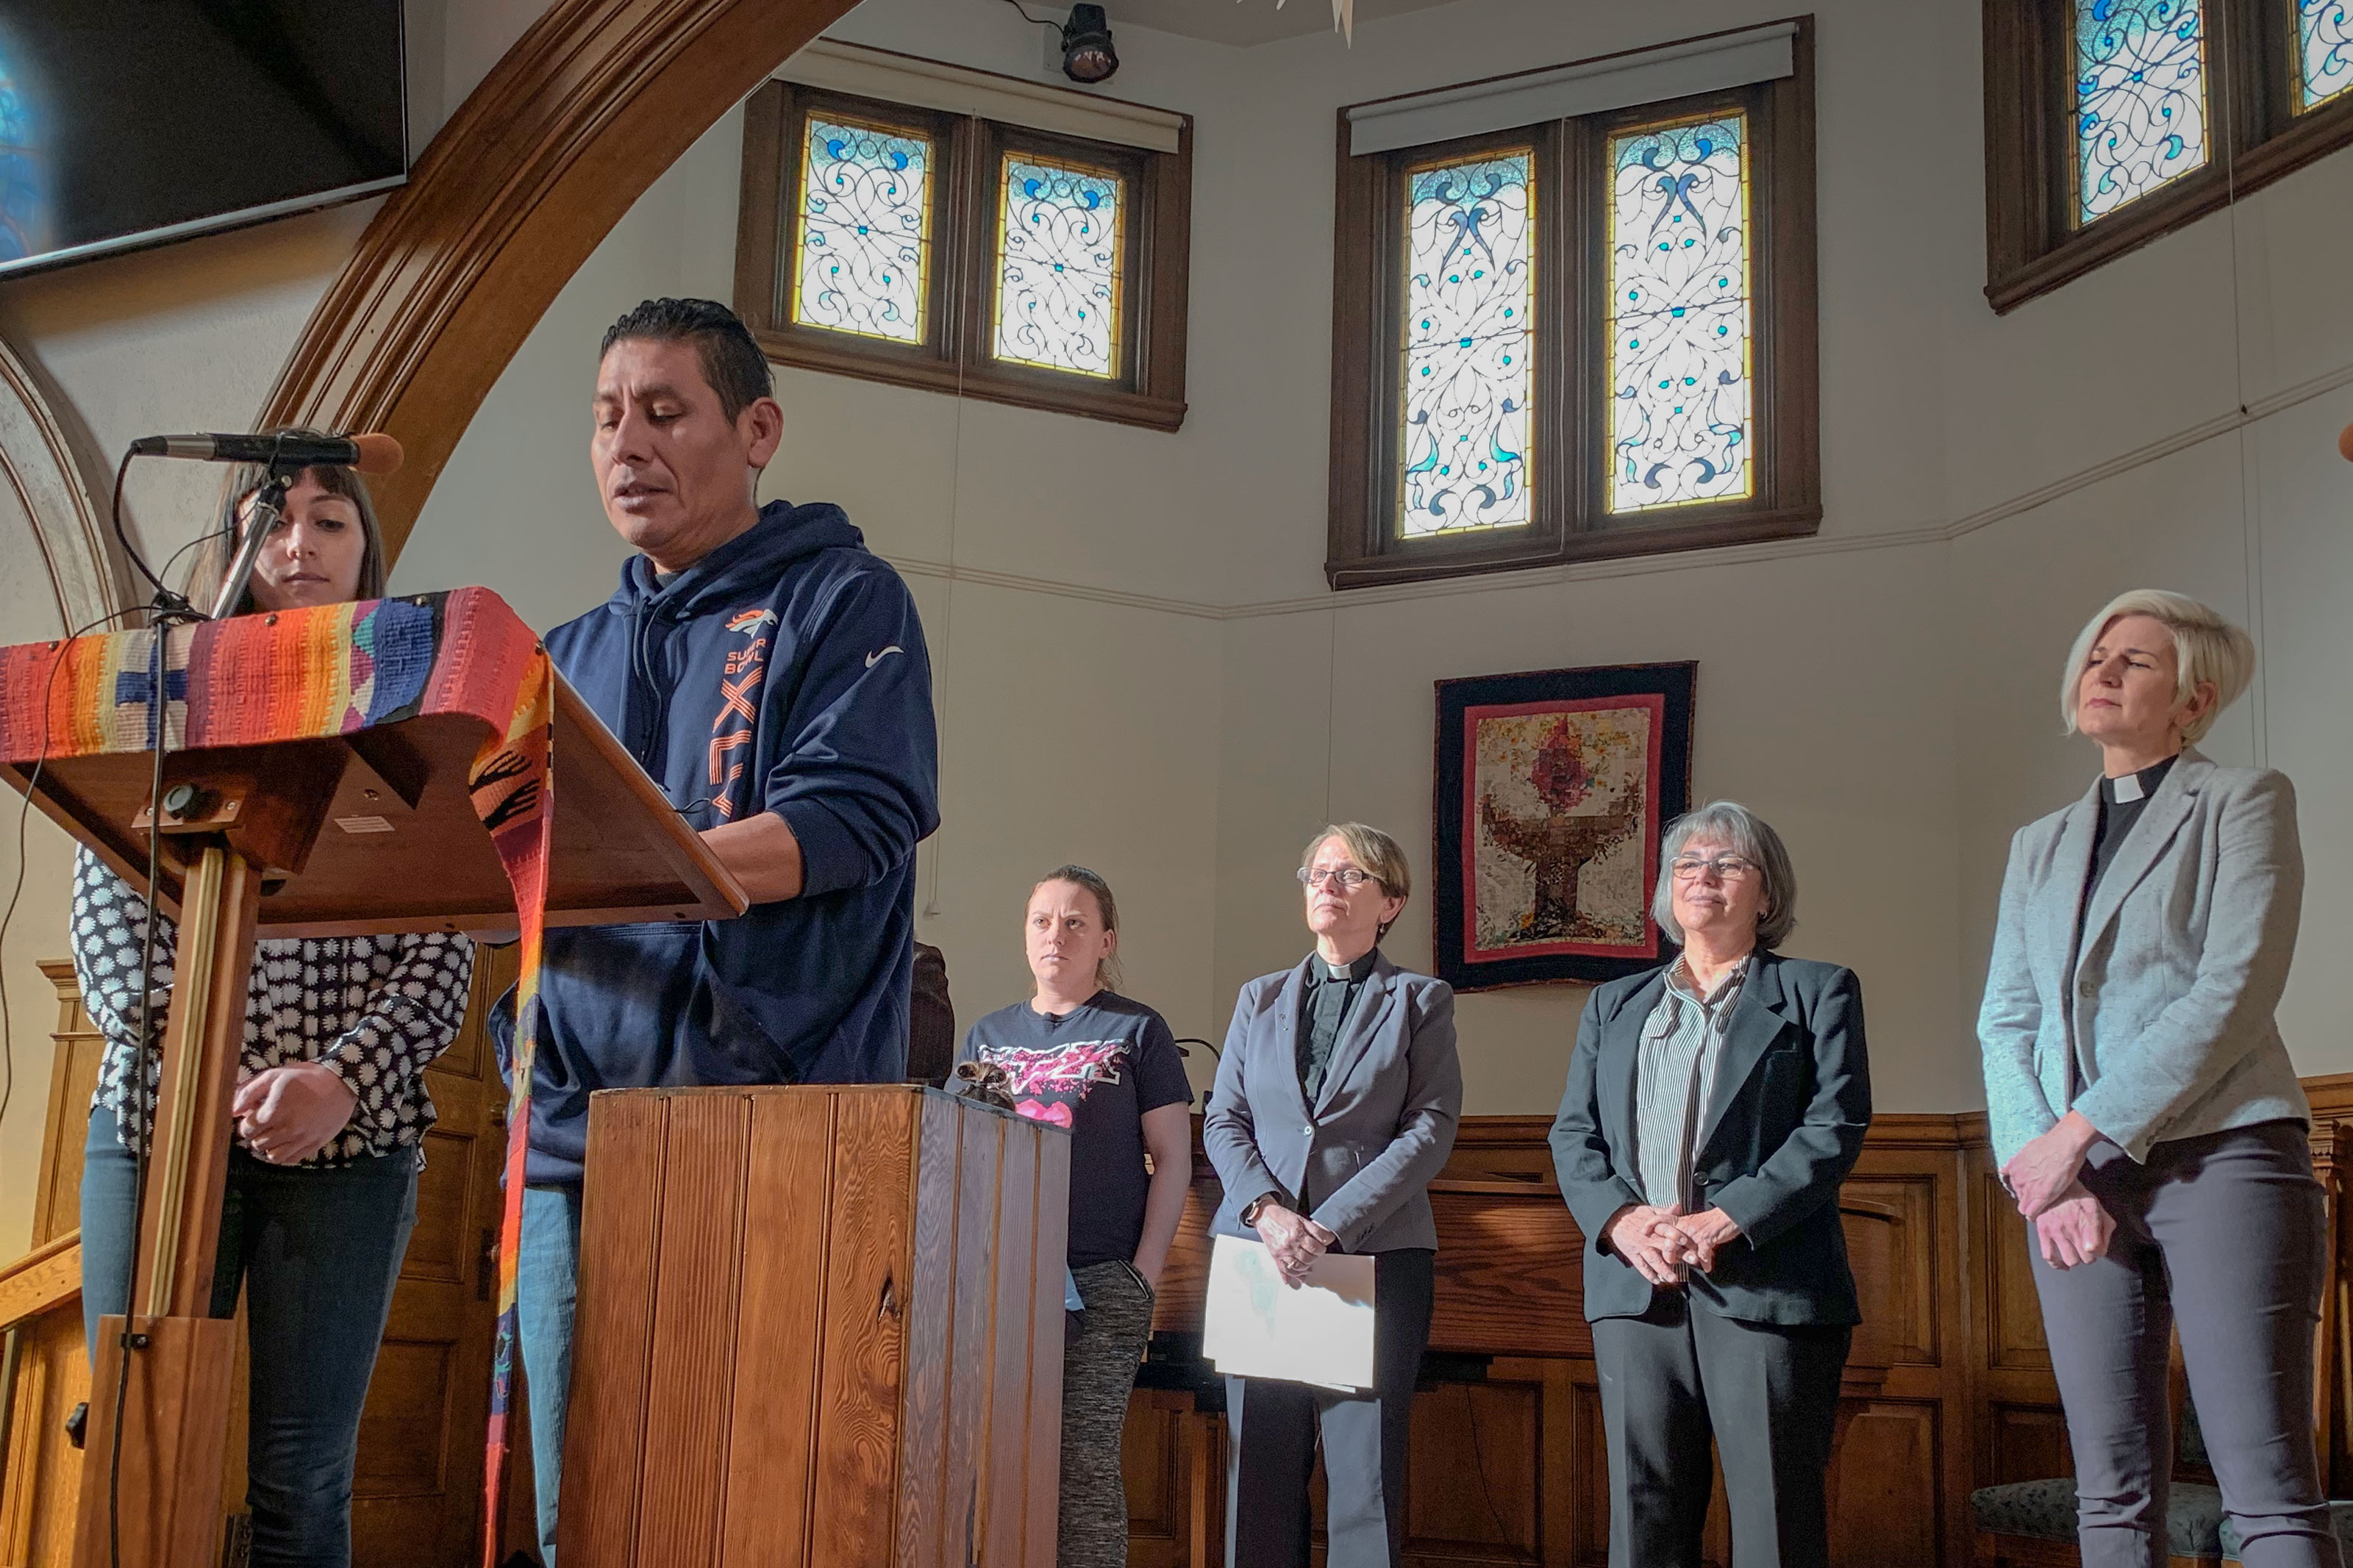 <p>Miguel Ramirez Valiente speaks to reporters from the All Souls Unitarian Universalist Church Wednesday, Jan. 9, 2018. The partial U.S. government shutdown is preventing a fight against his current deportation order.</p>